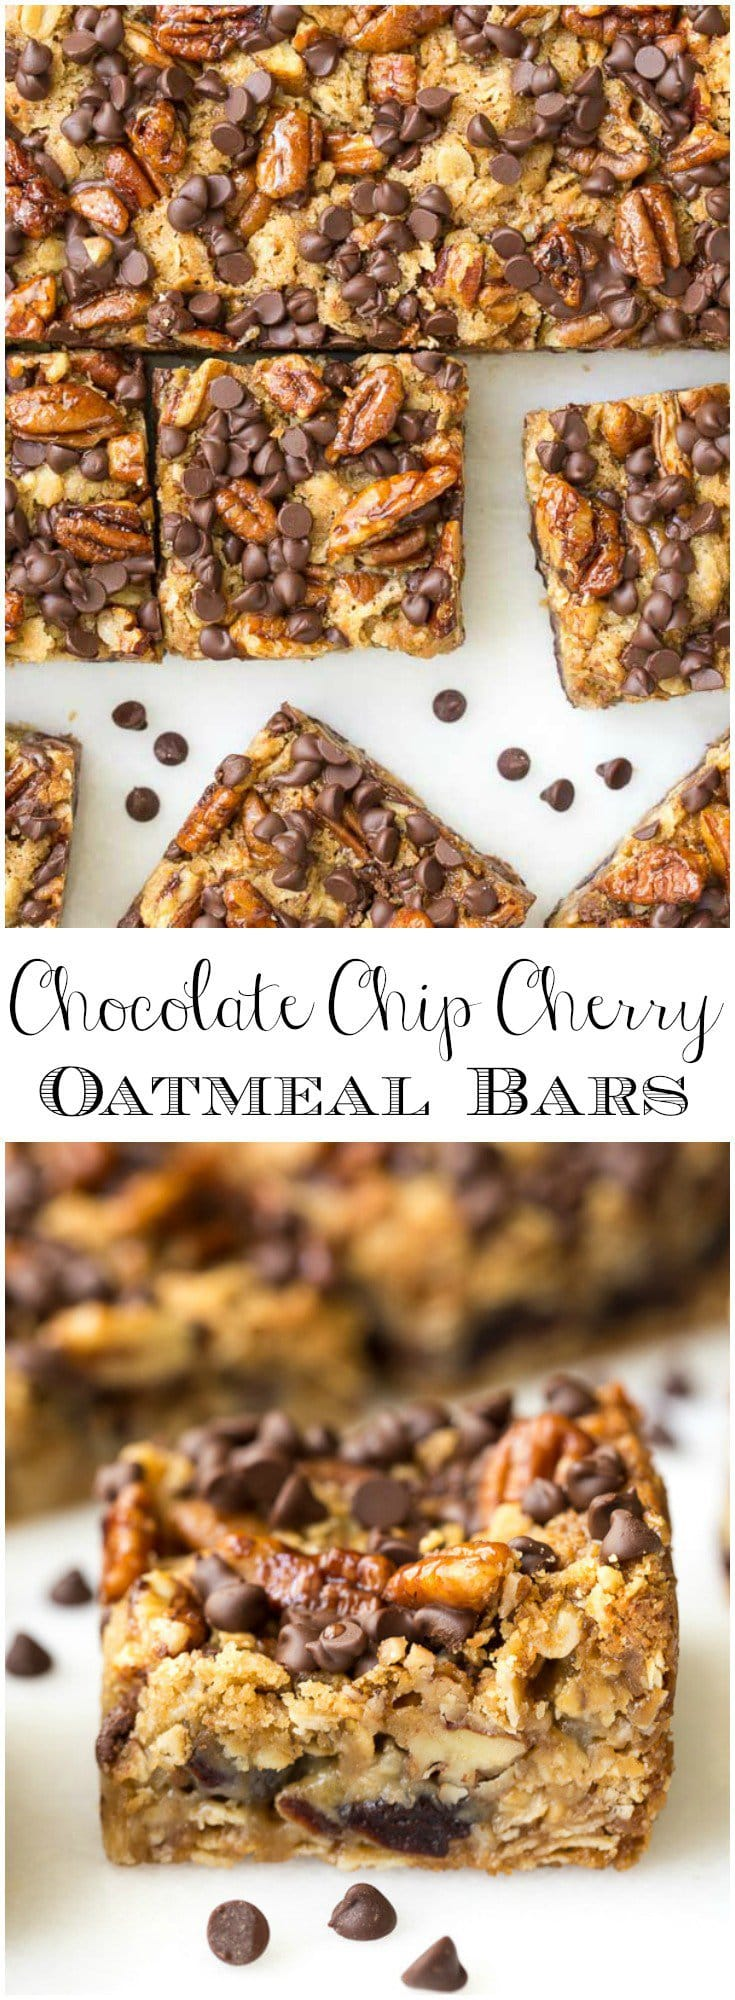 These Chocolate Chip Cherry Oatmeal Bars are a delicious sweet treat for any occasion. They come together quickly and always bring lots of